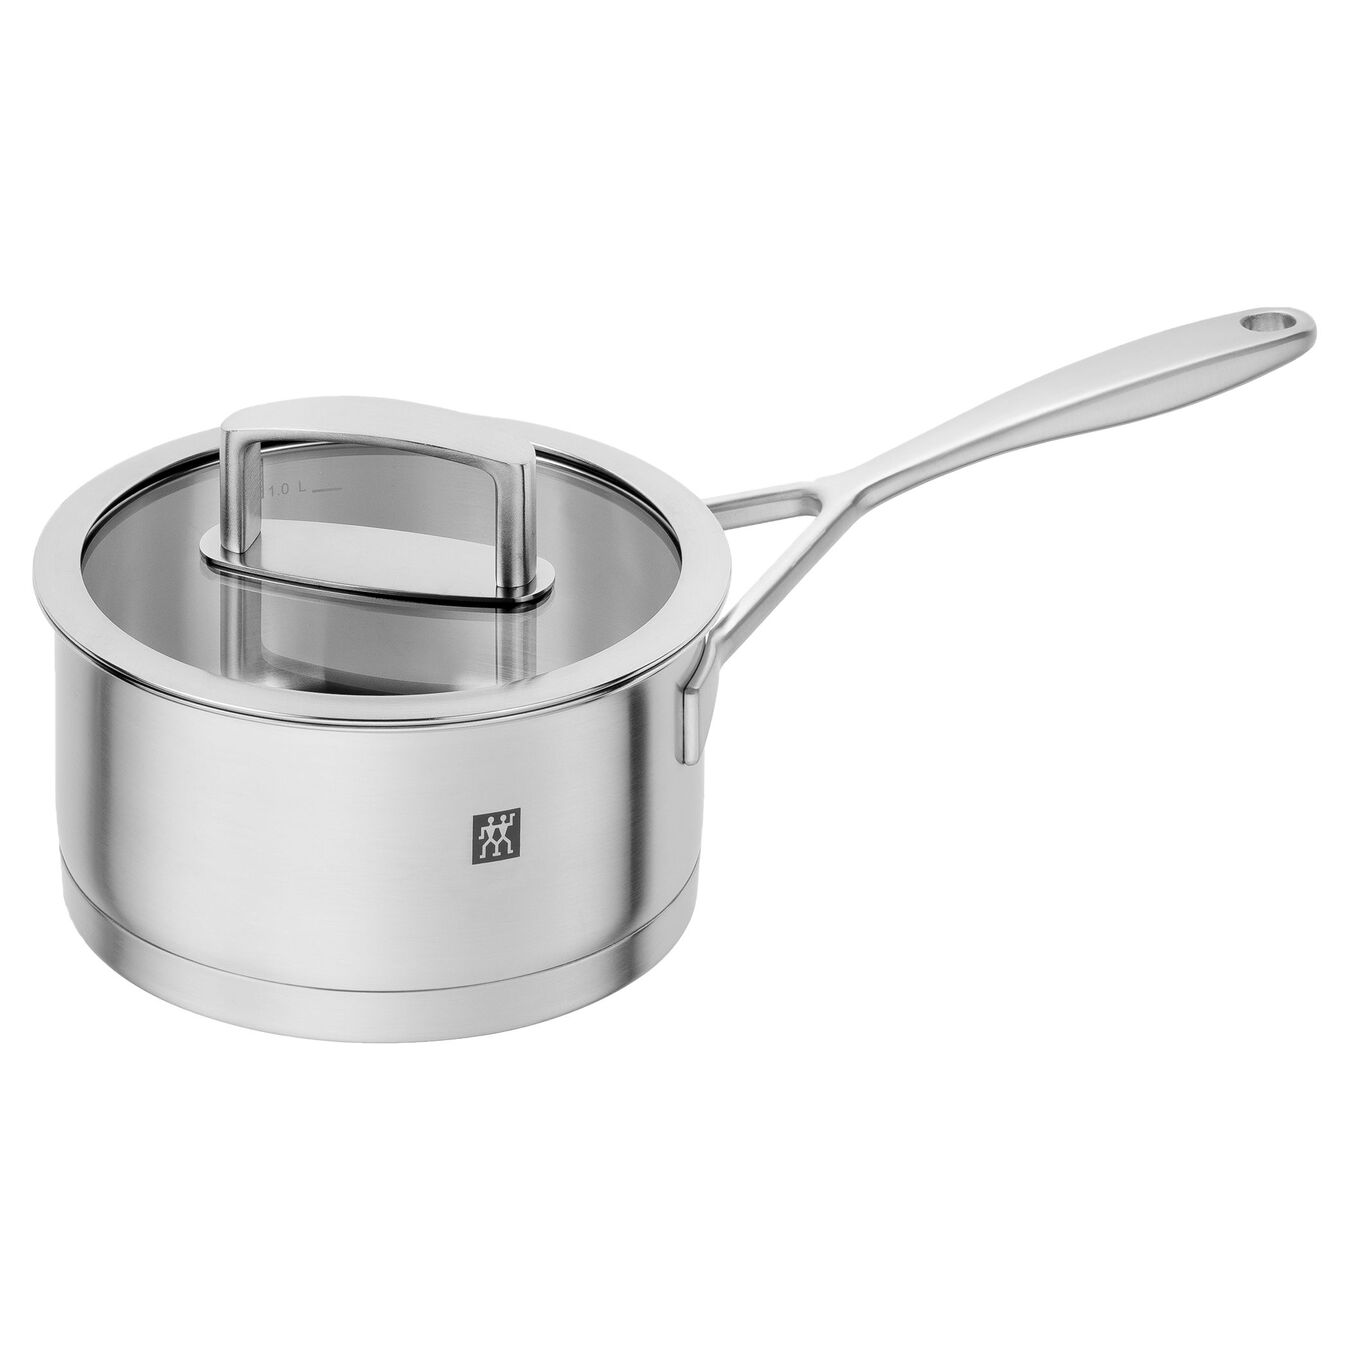 Pot set, 10 Piece   round   18/10 Stainless Steel,,large 3